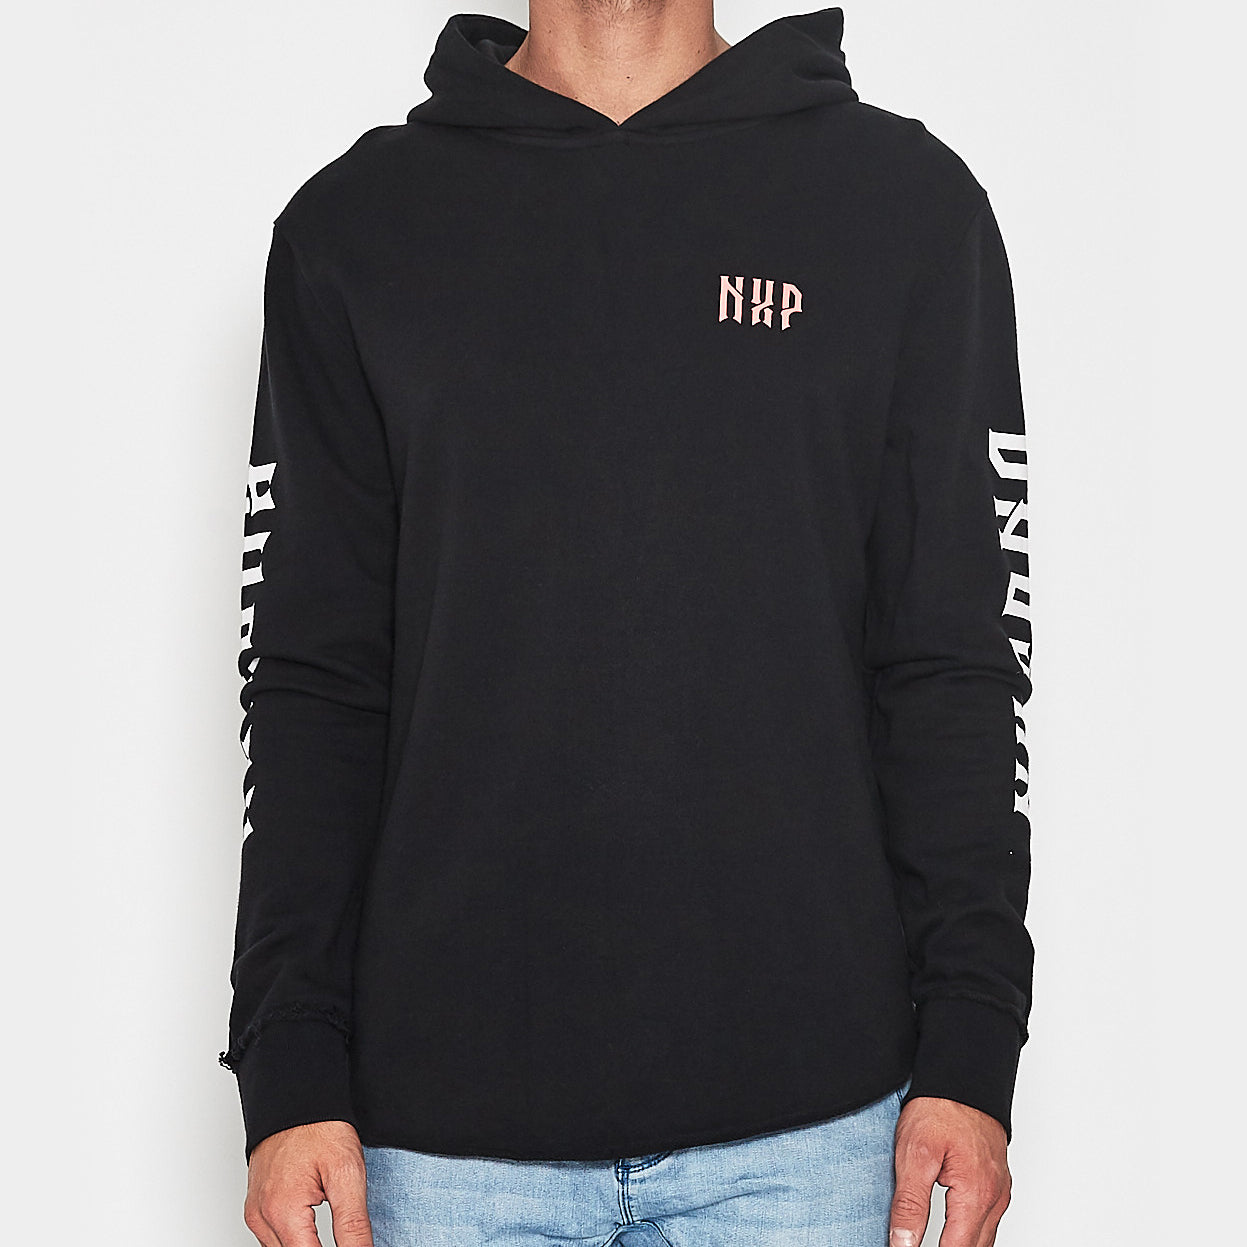 NxP Evolve Hoodie - Black - Forestwood Co